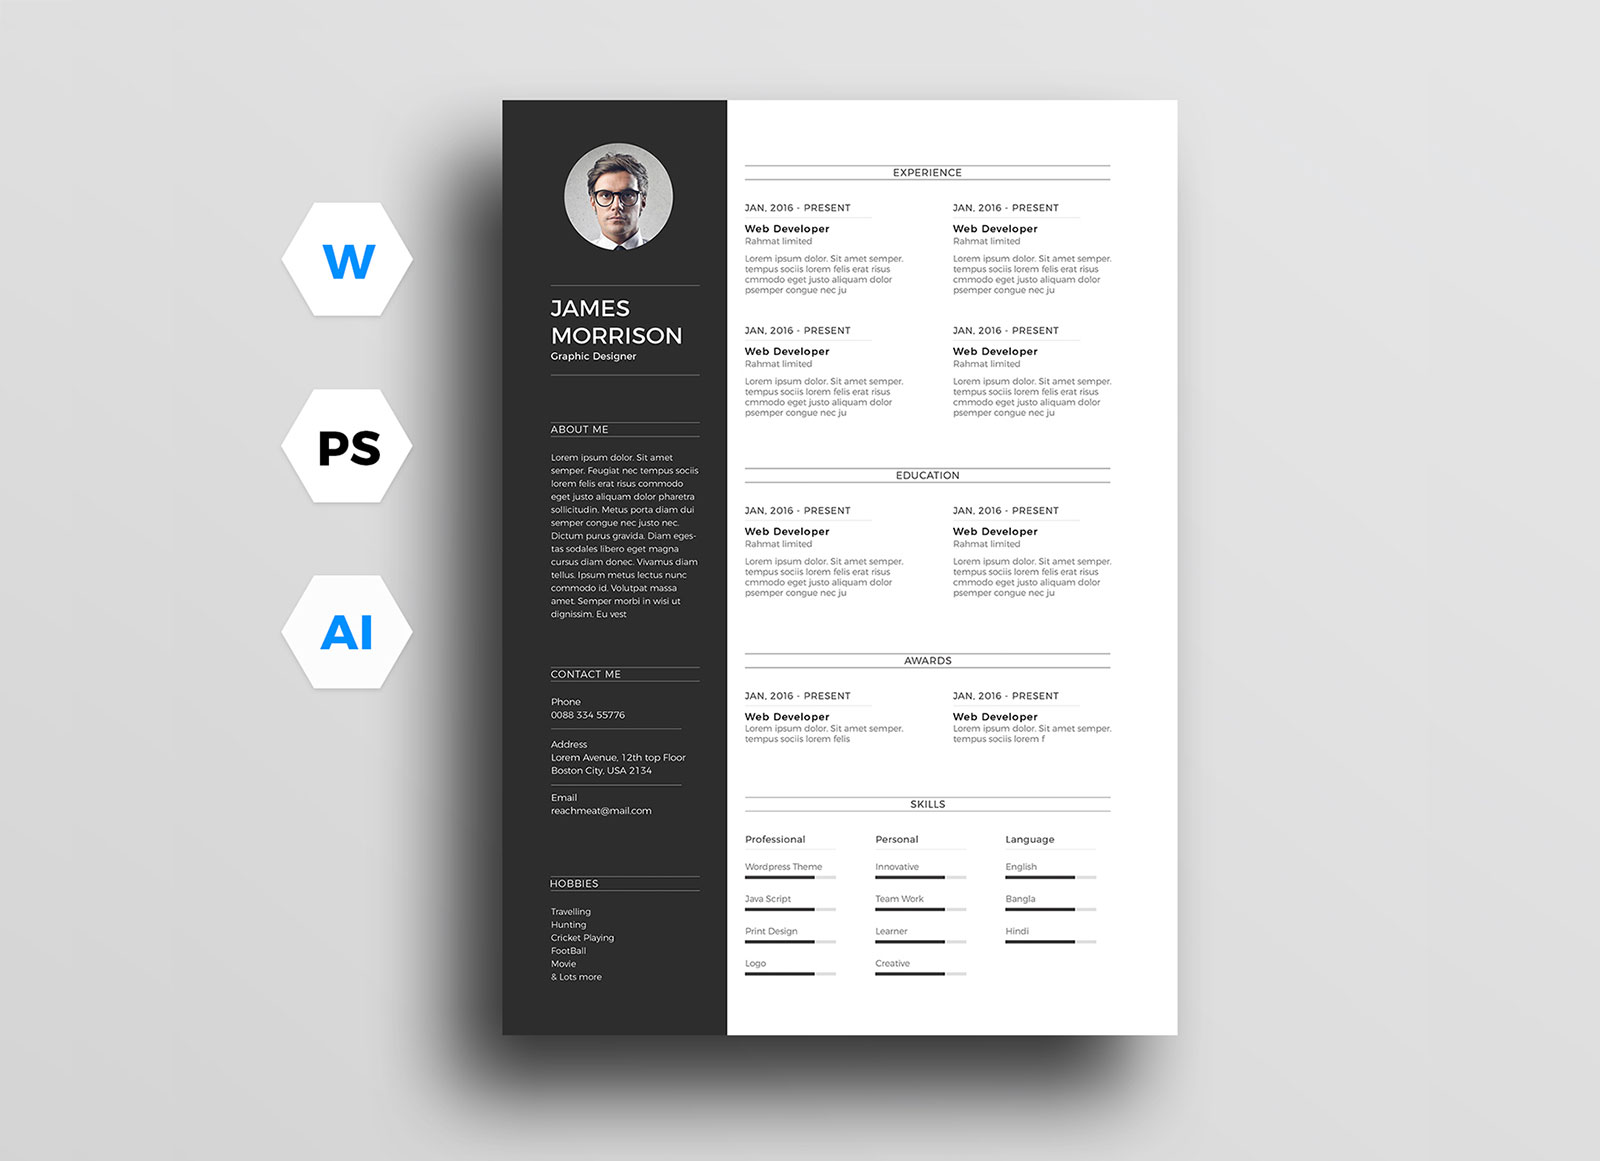 Resume Template Psd from good-resume.com